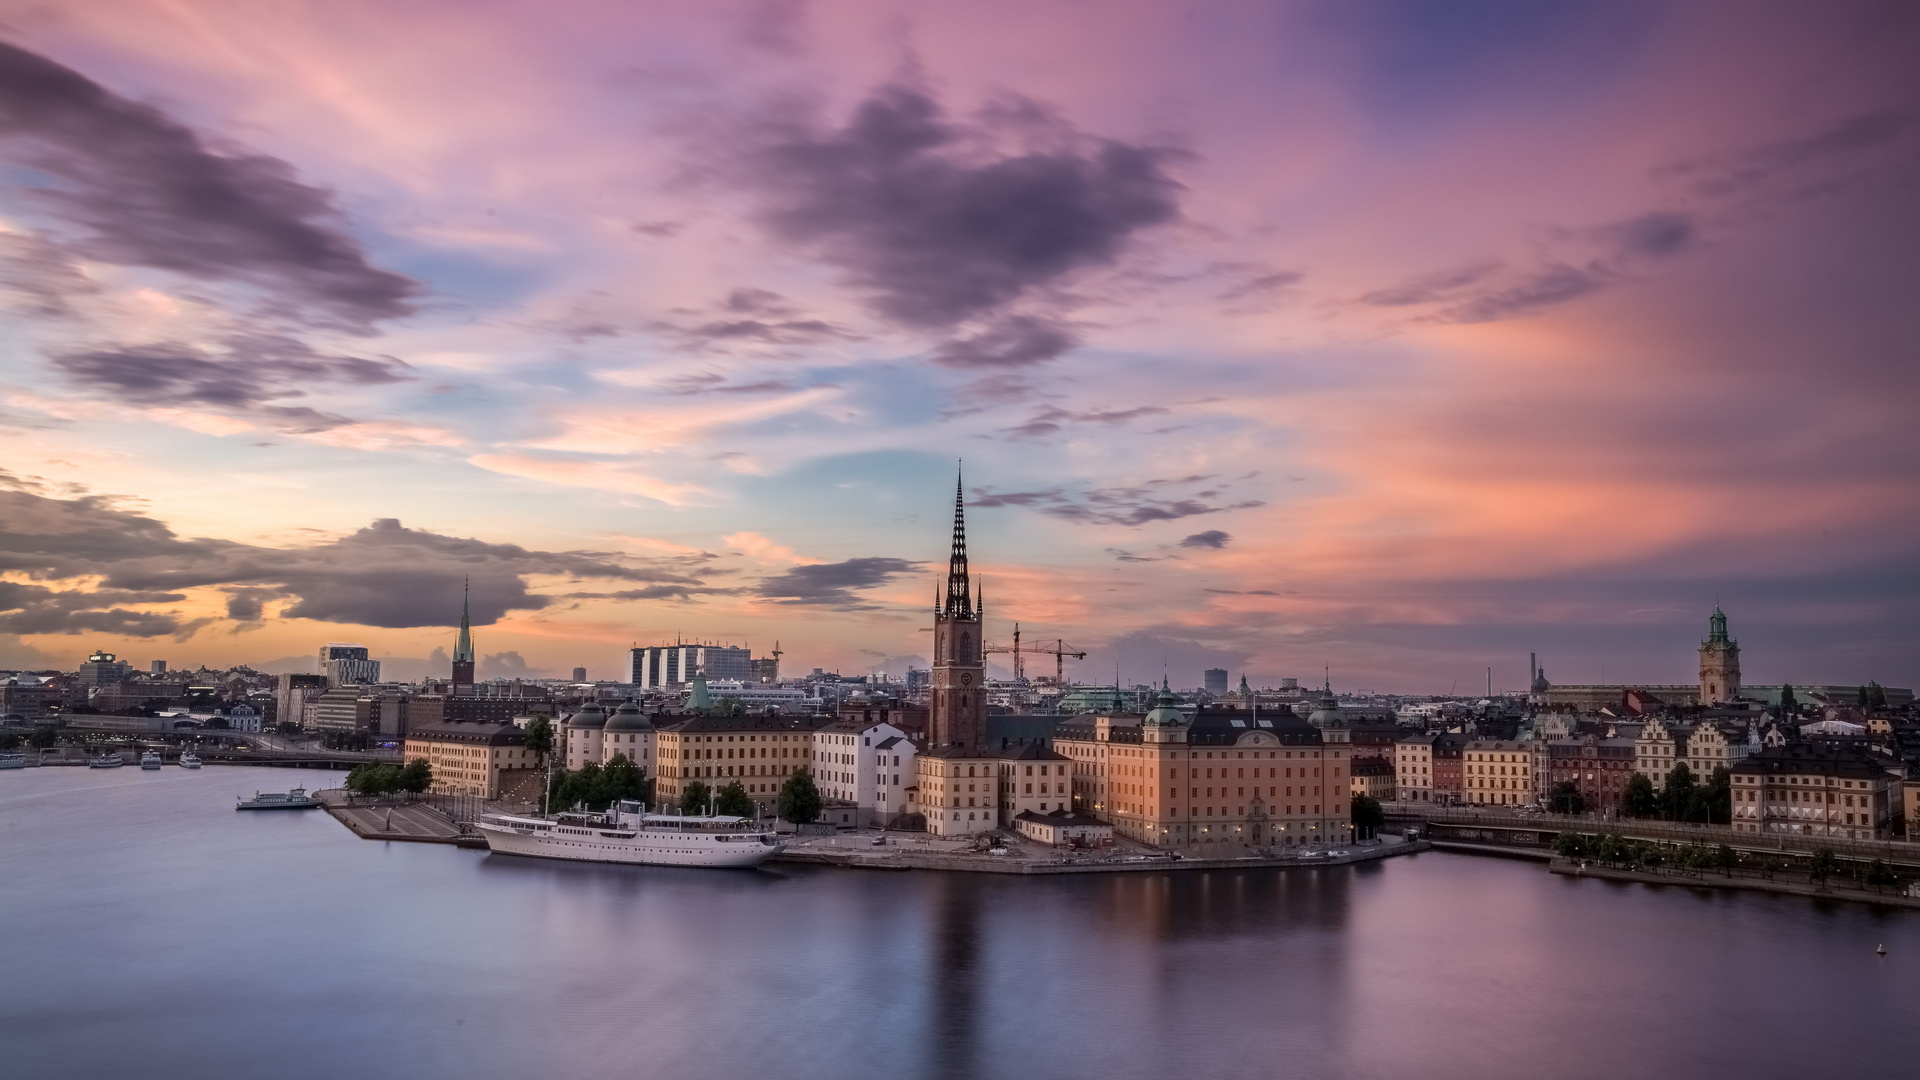 A view in Sweden